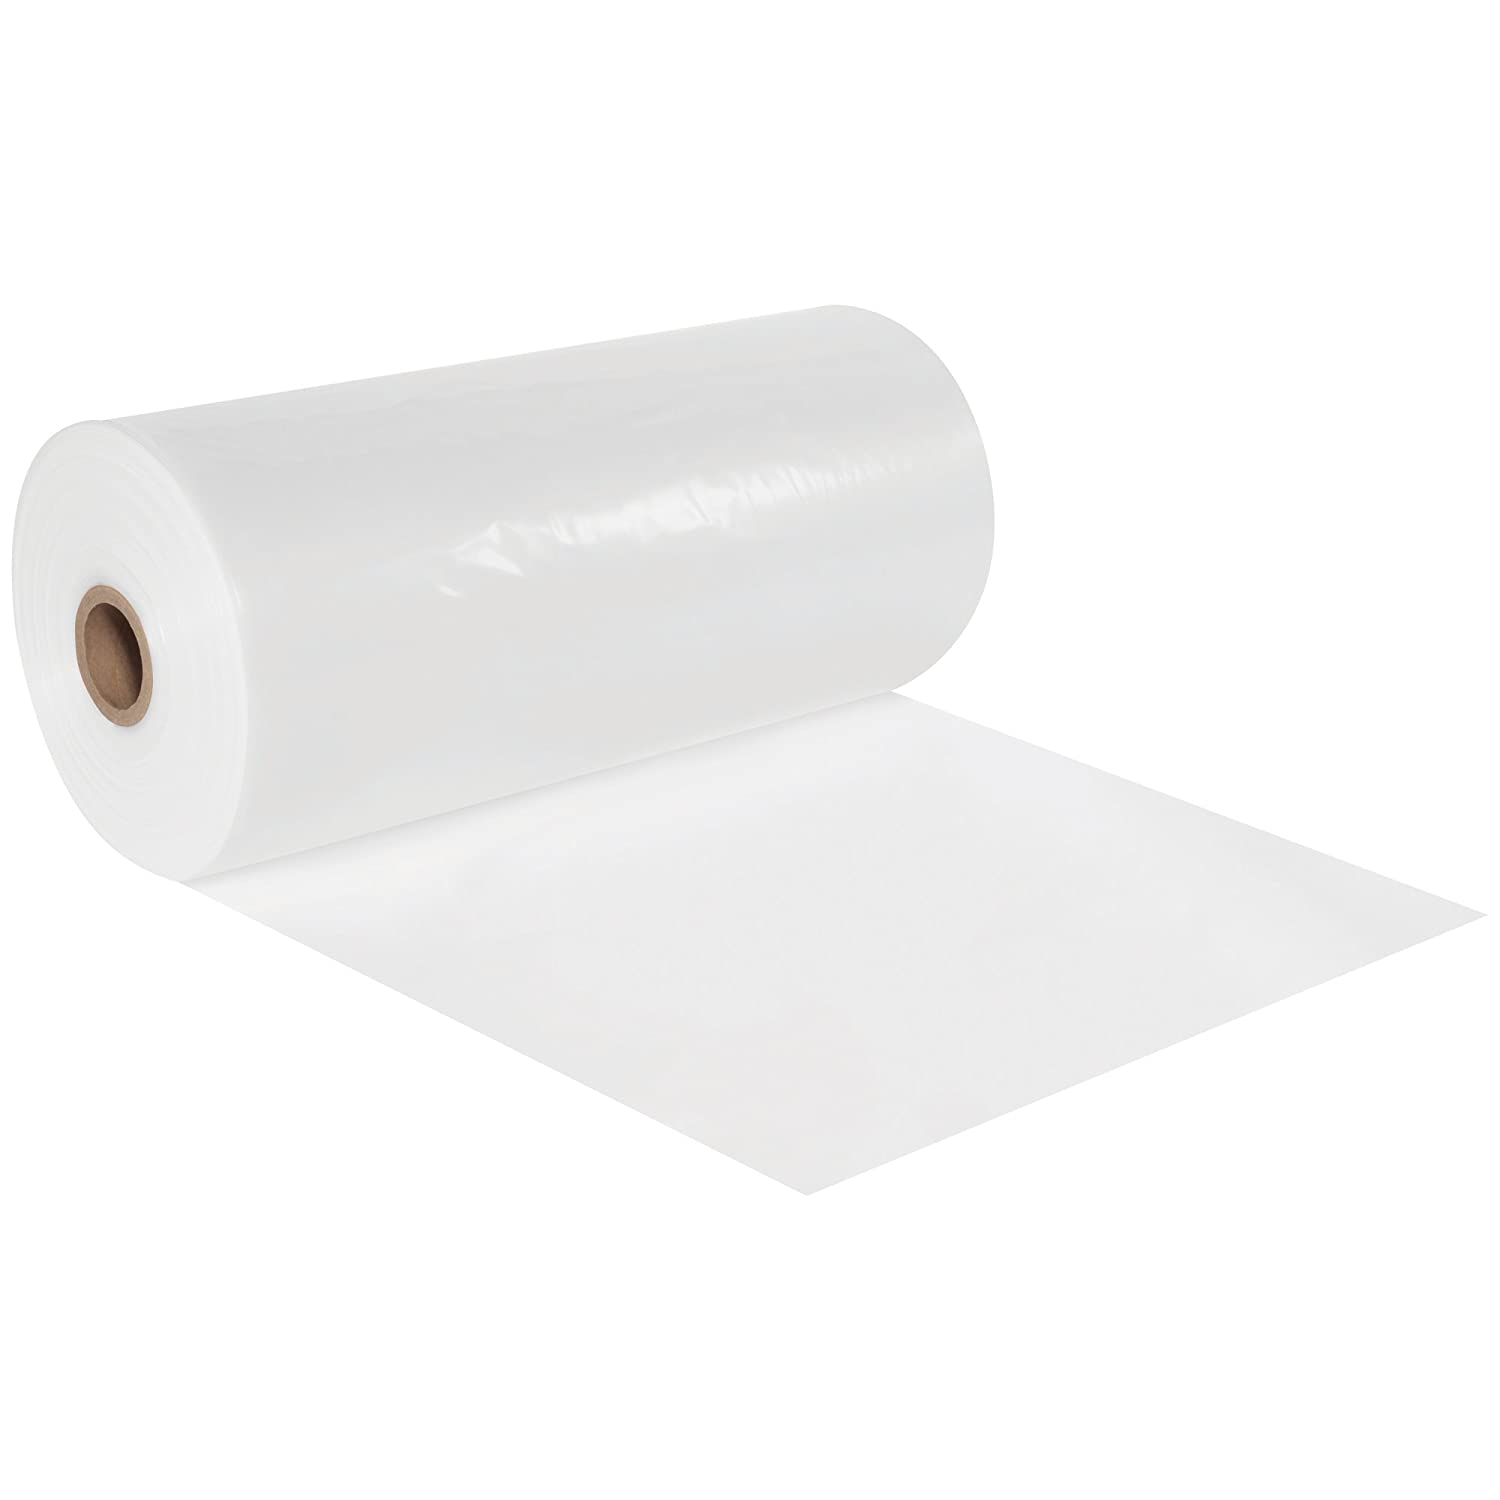 725 X 5 Clear PT0506 Aviditi Poly Tubing Roll 6 mil Thick